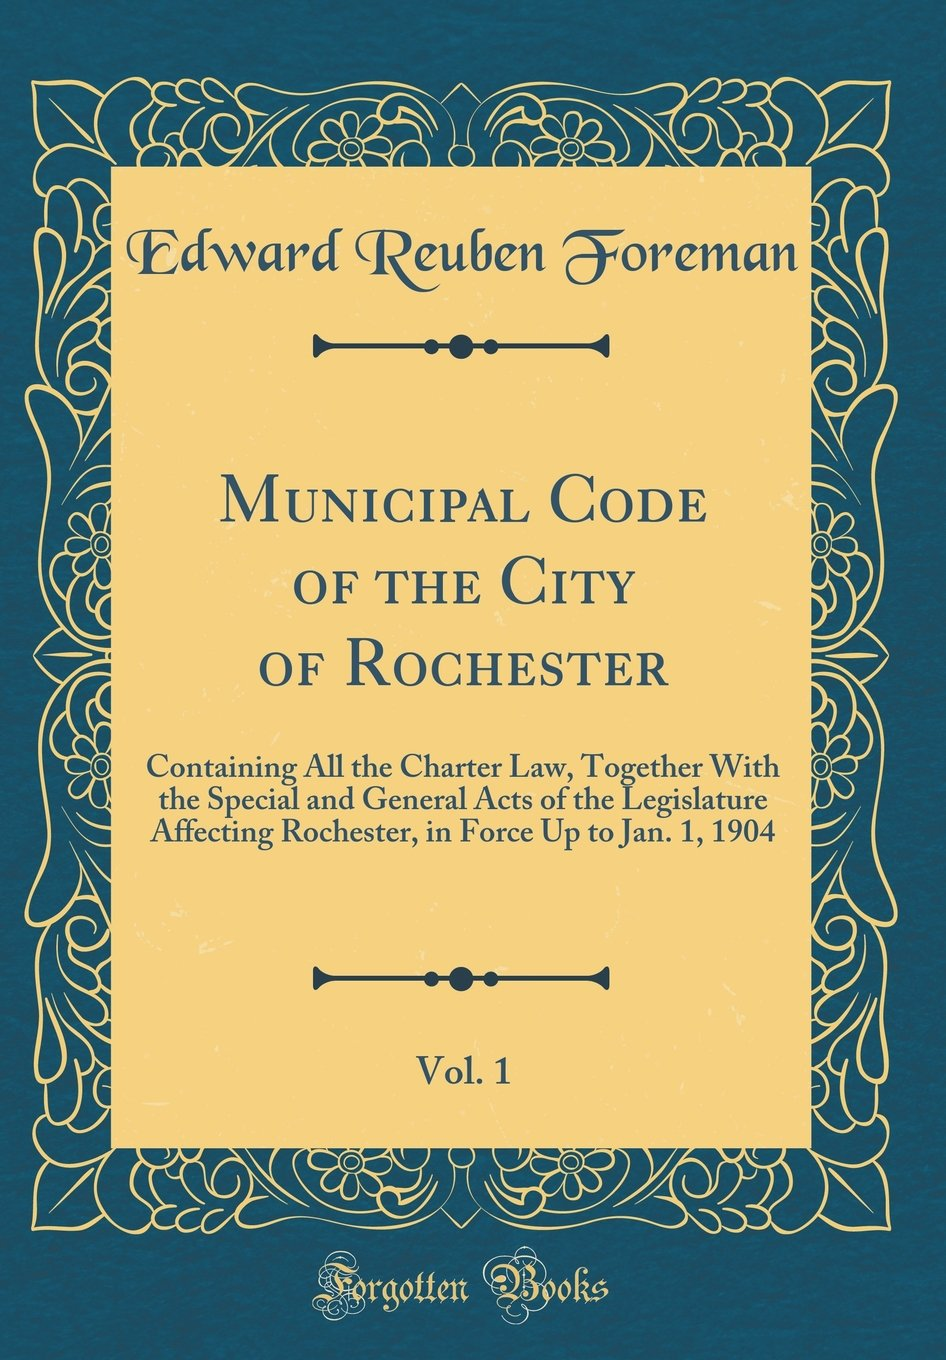 Read Online Municipal Code of the City of Rochester, Vol. 1: Containing All the Charter Law, Together With the Special and General Acts of the Legislature ... in Force Up to Jan. 1, 1904 (Classic Reprint) PDF